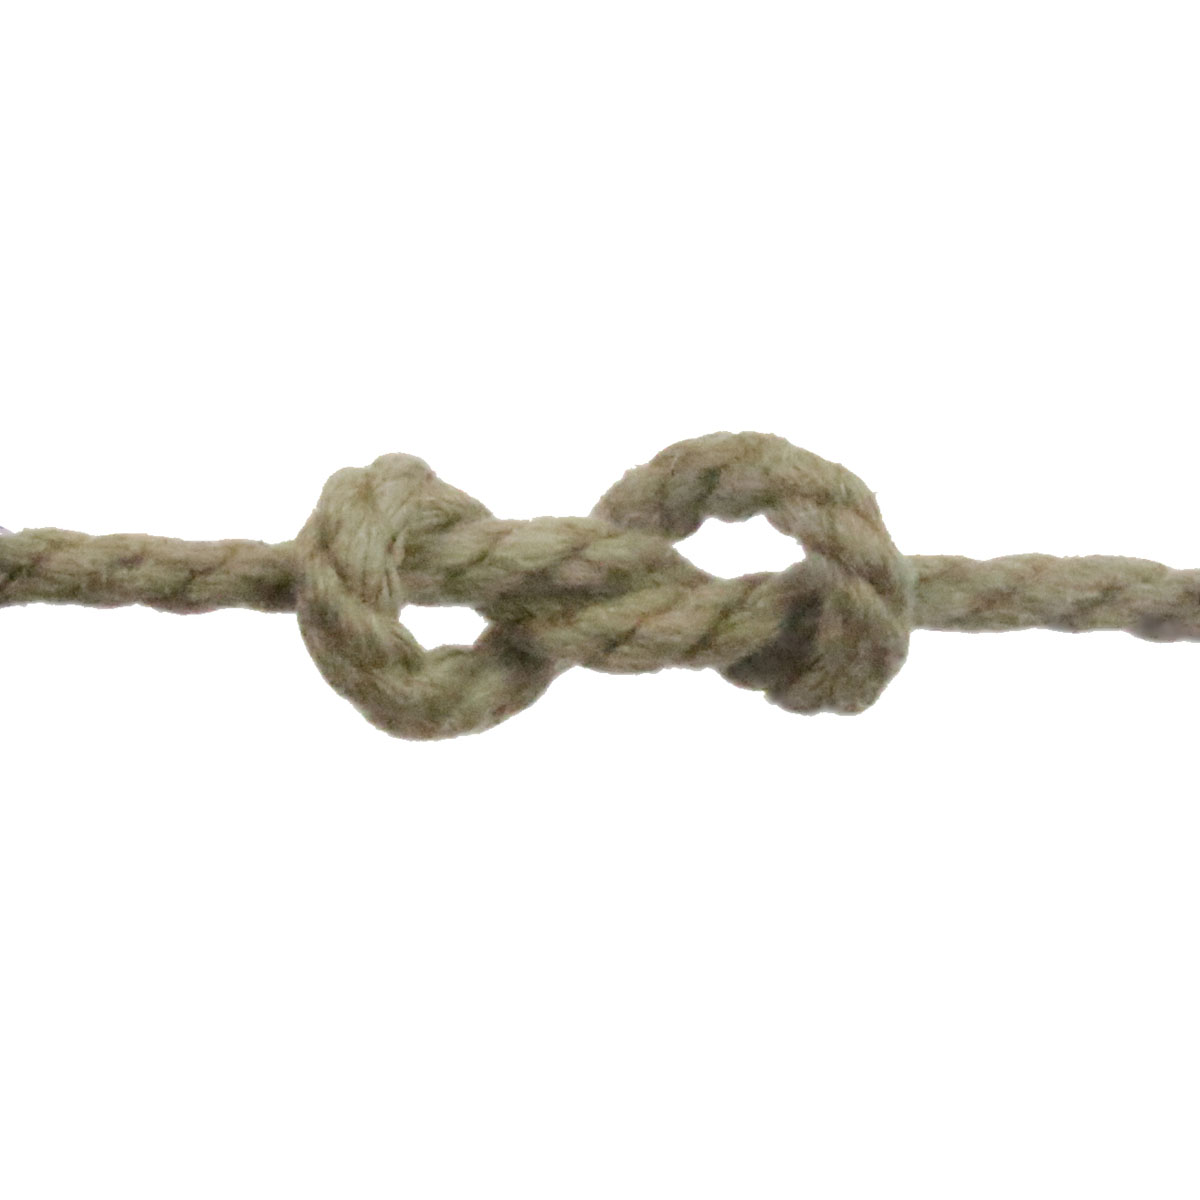 Overhand-Knot